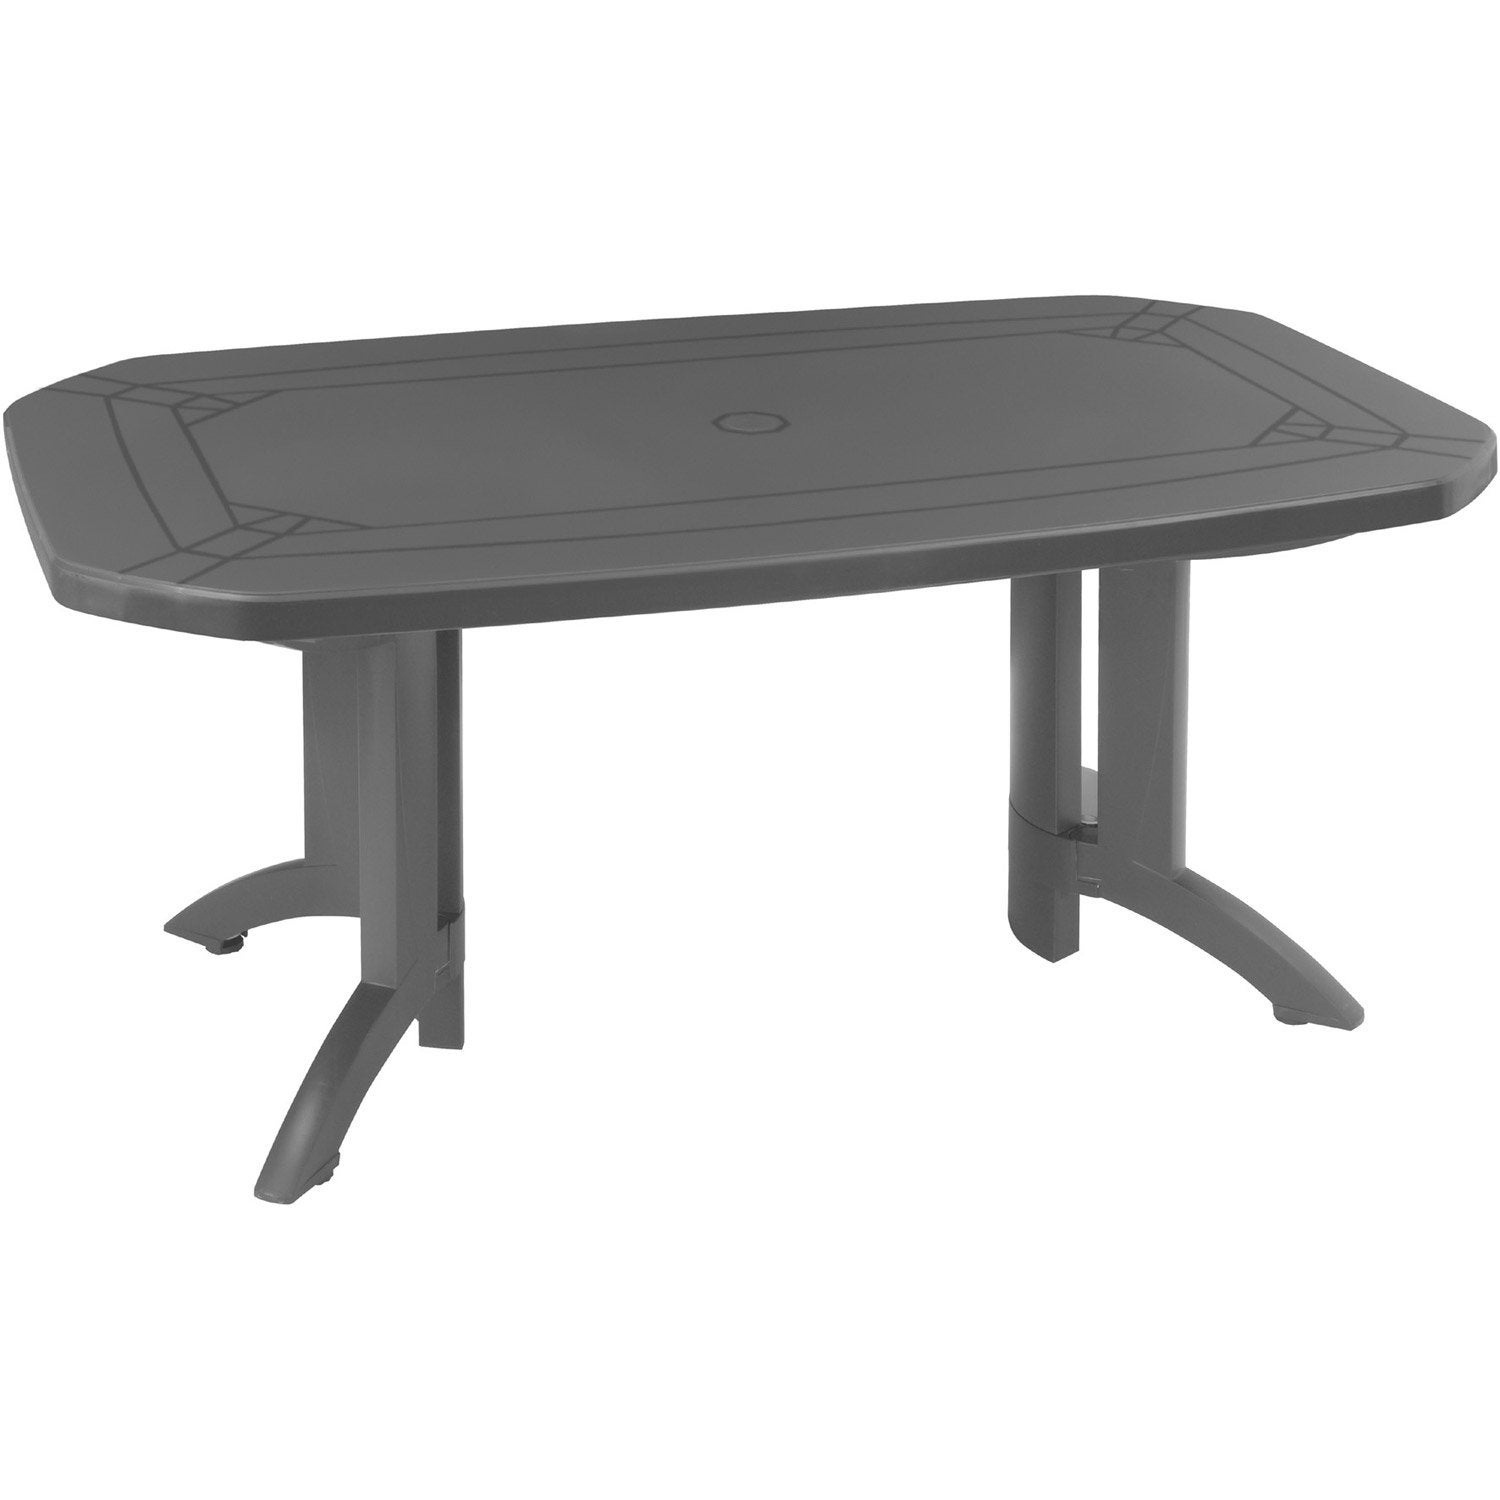 Table de jardin grosfillex v ga rectangulaire anthracite 6 - Table rabattable leroy merlin ...